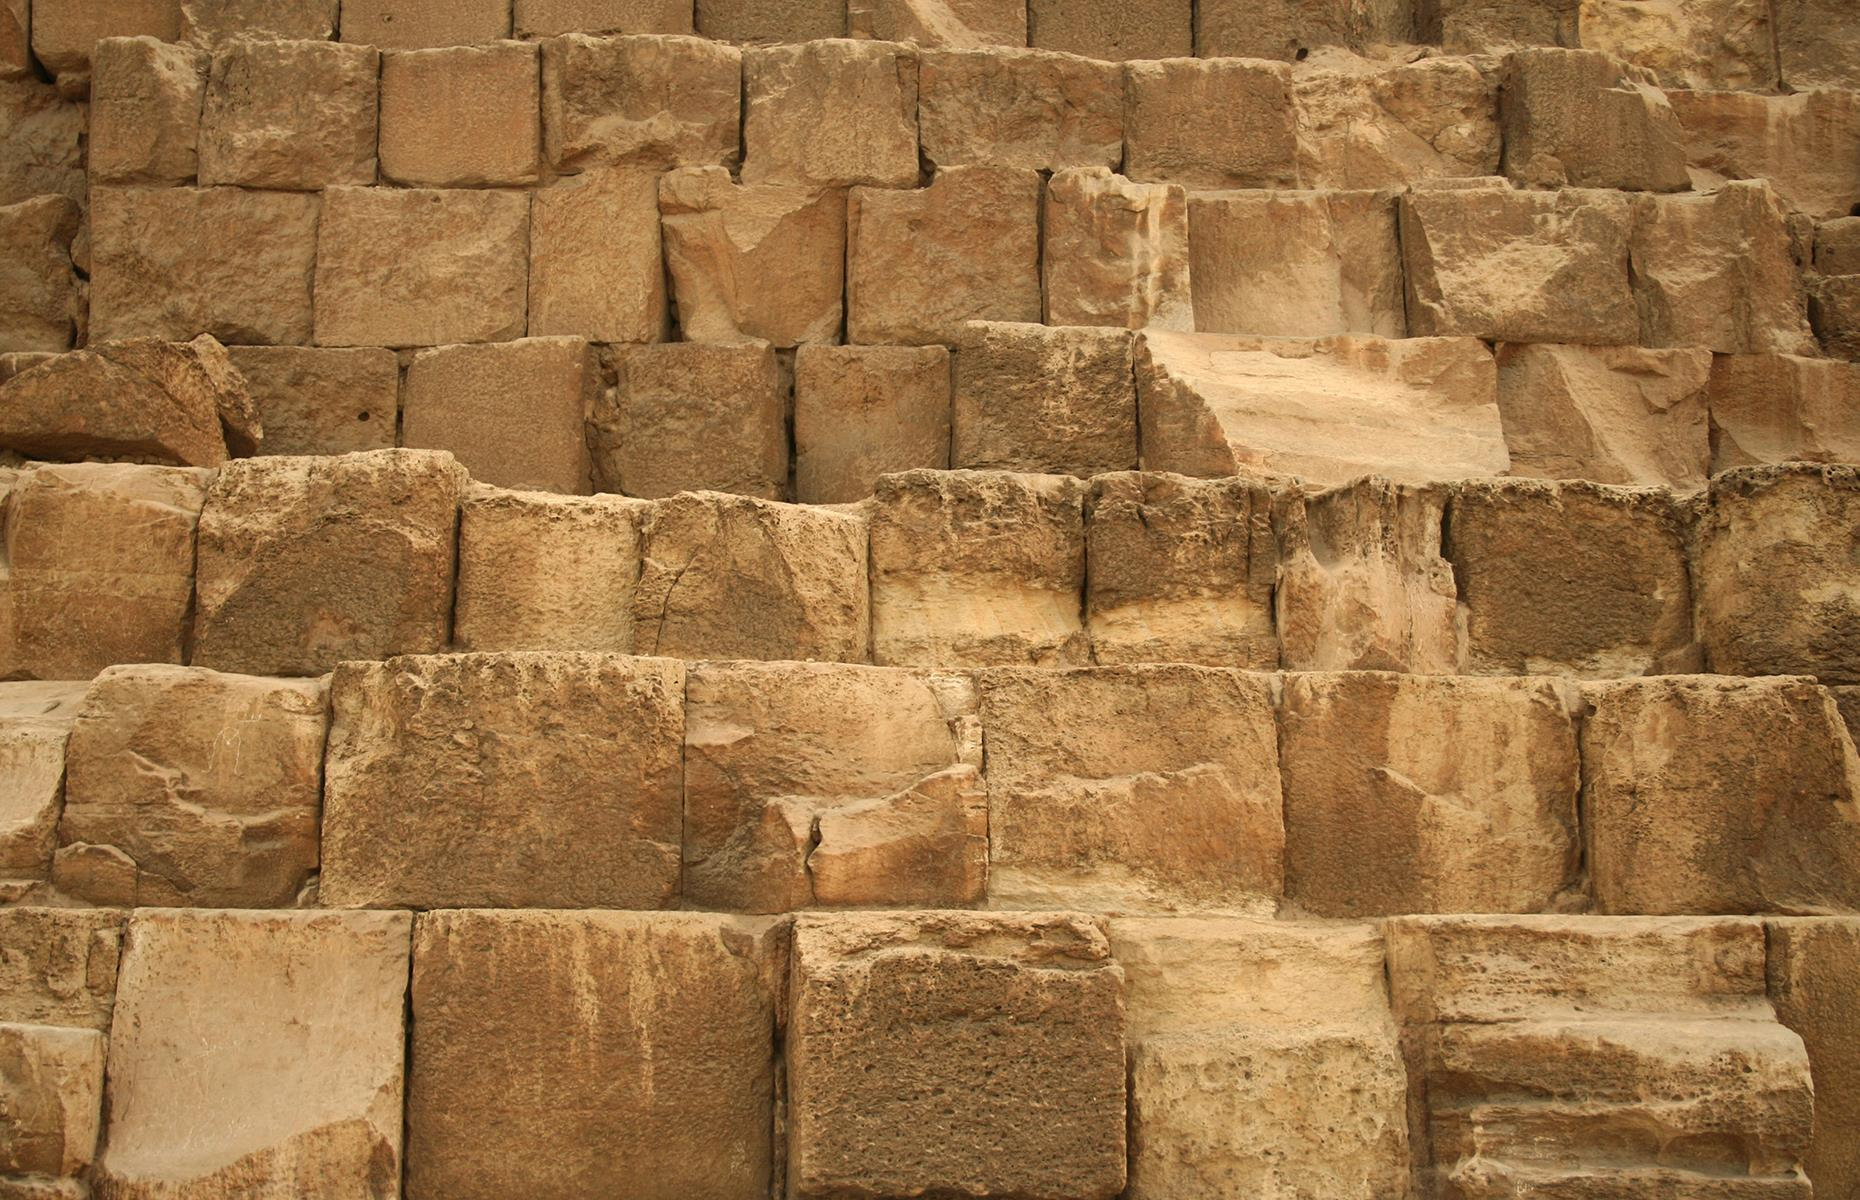 Slide 22 of 53: Dating back to around 2560 BC, it's one of the seven wonders of the world. Located in Egypt, this man-made structure has puzzled scientists for decades because no one's really sure how exactly it was built.